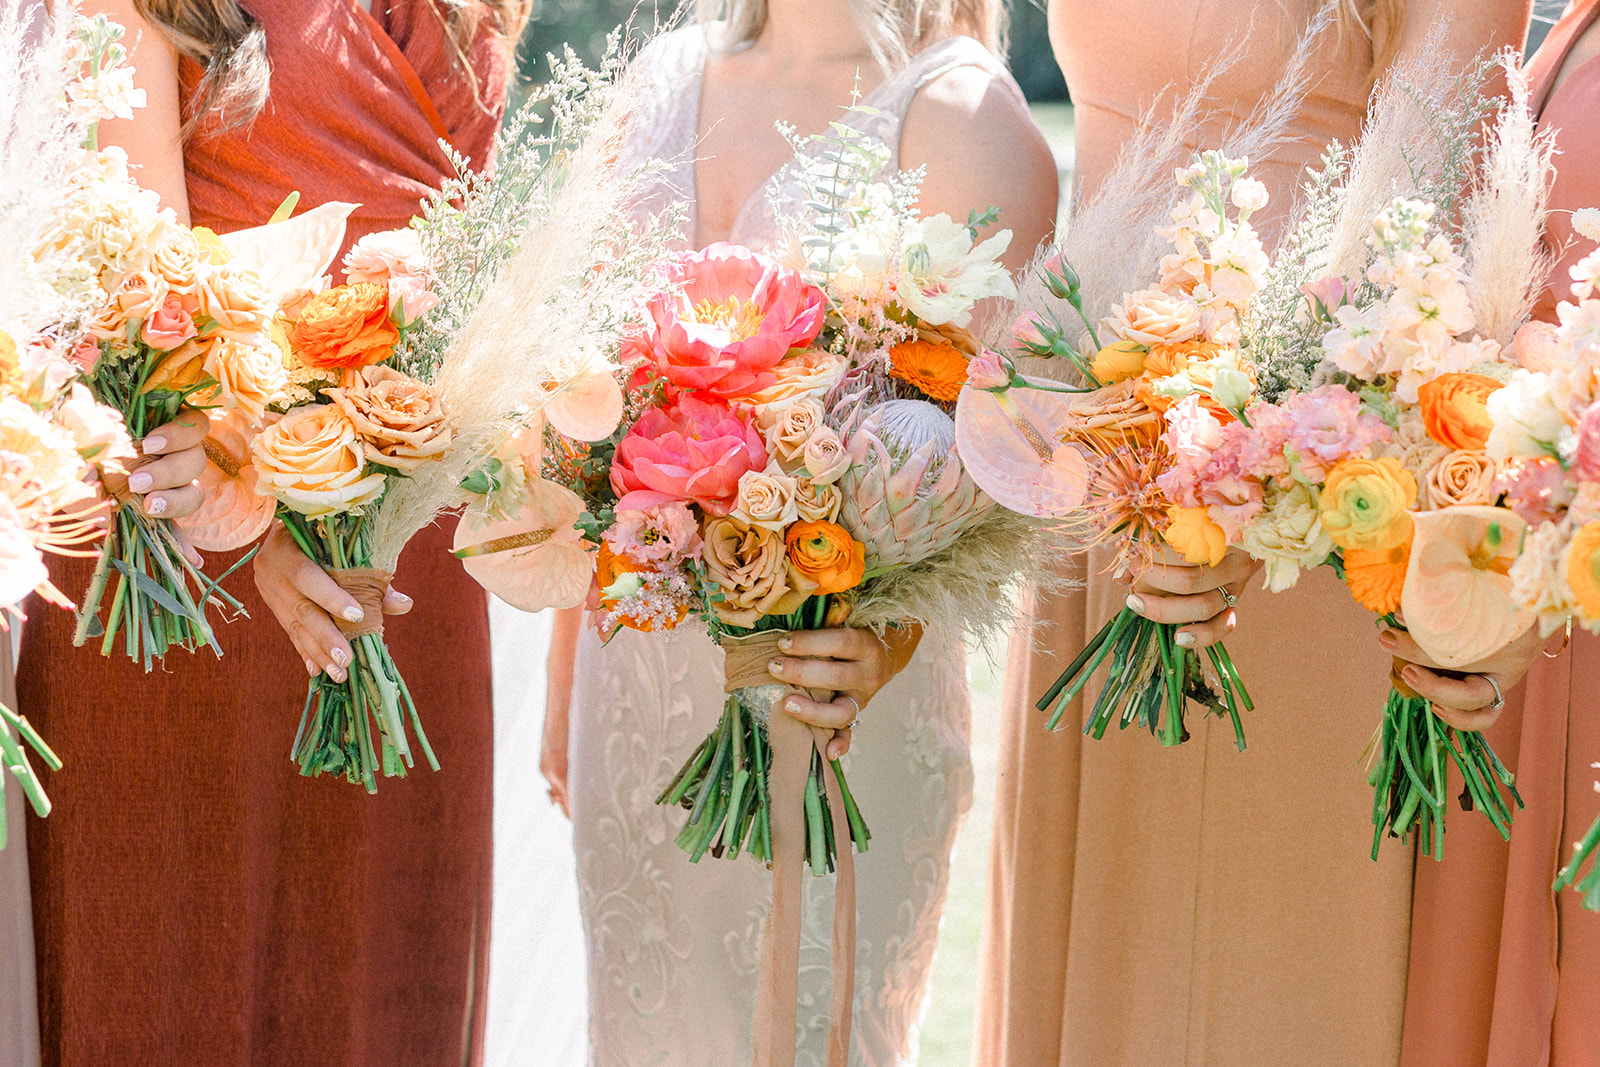 Pampas grass bridesmaids bouquets by Lucky Day Events Co. x Goldie Blooms